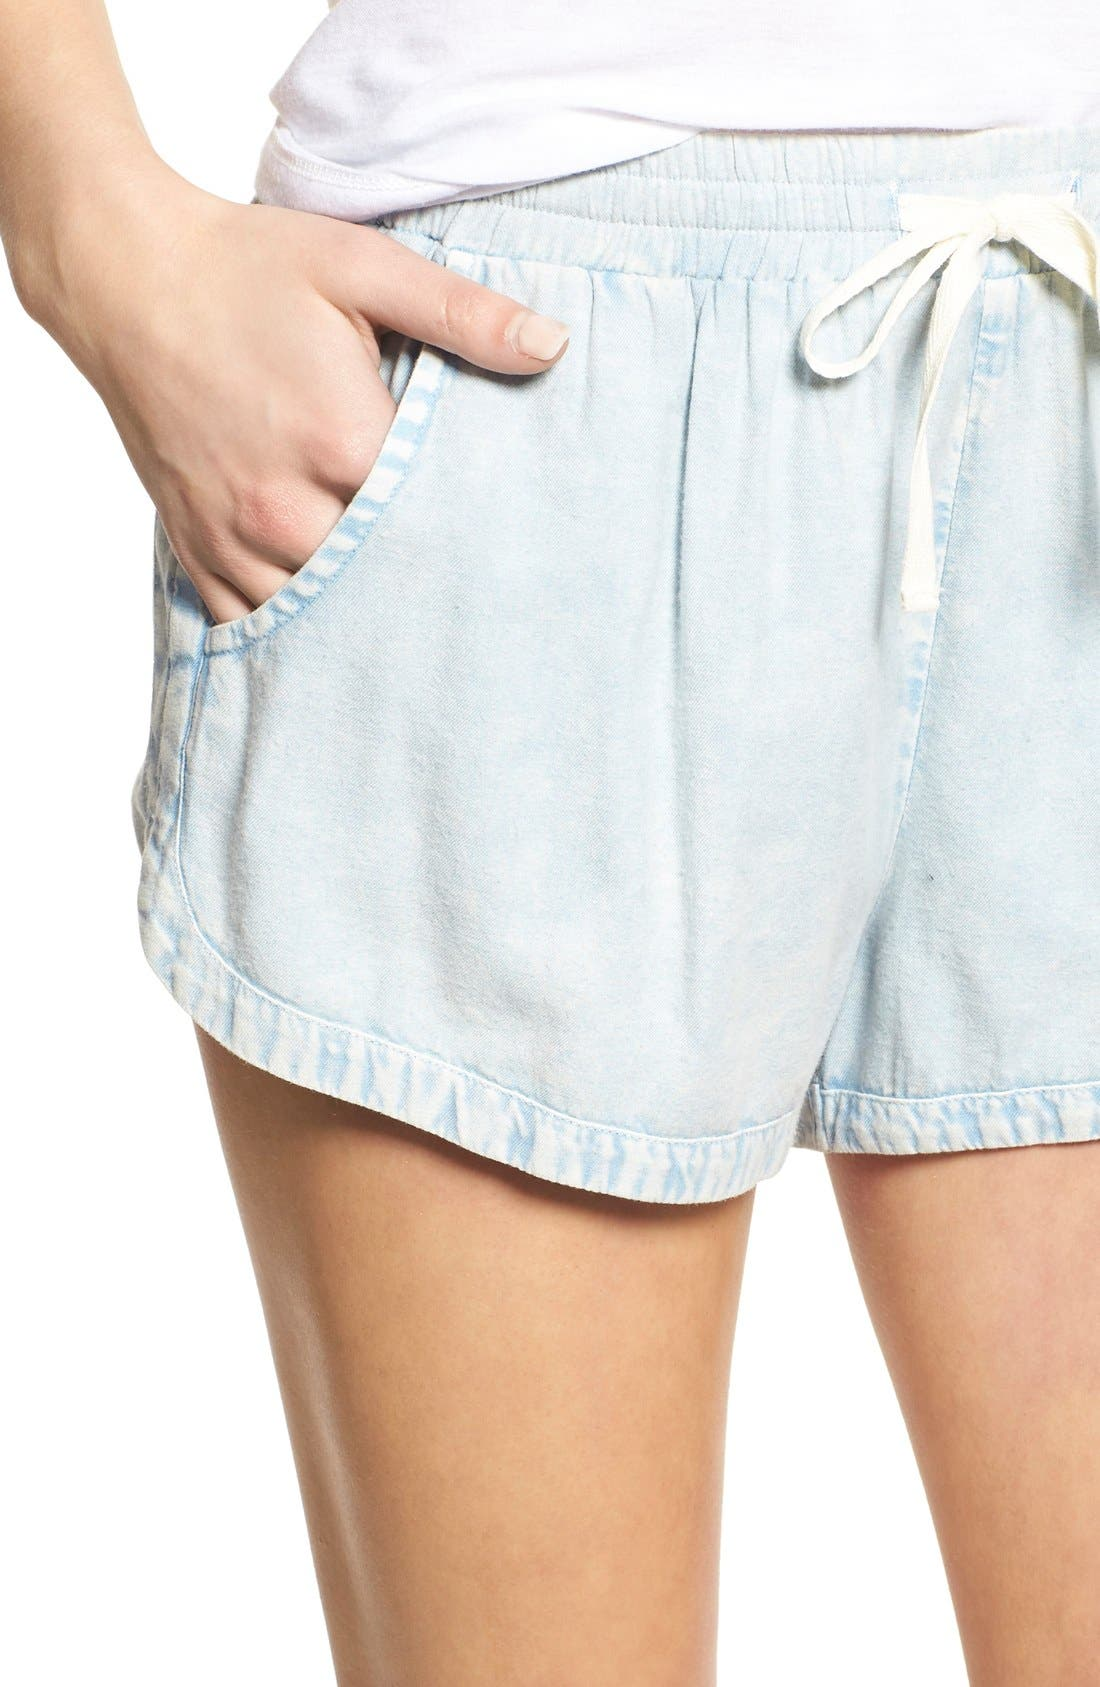 'Road Trippin' Shorts,                             Alternate thumbnail 3, color,                             CHAMBRAY BLUE